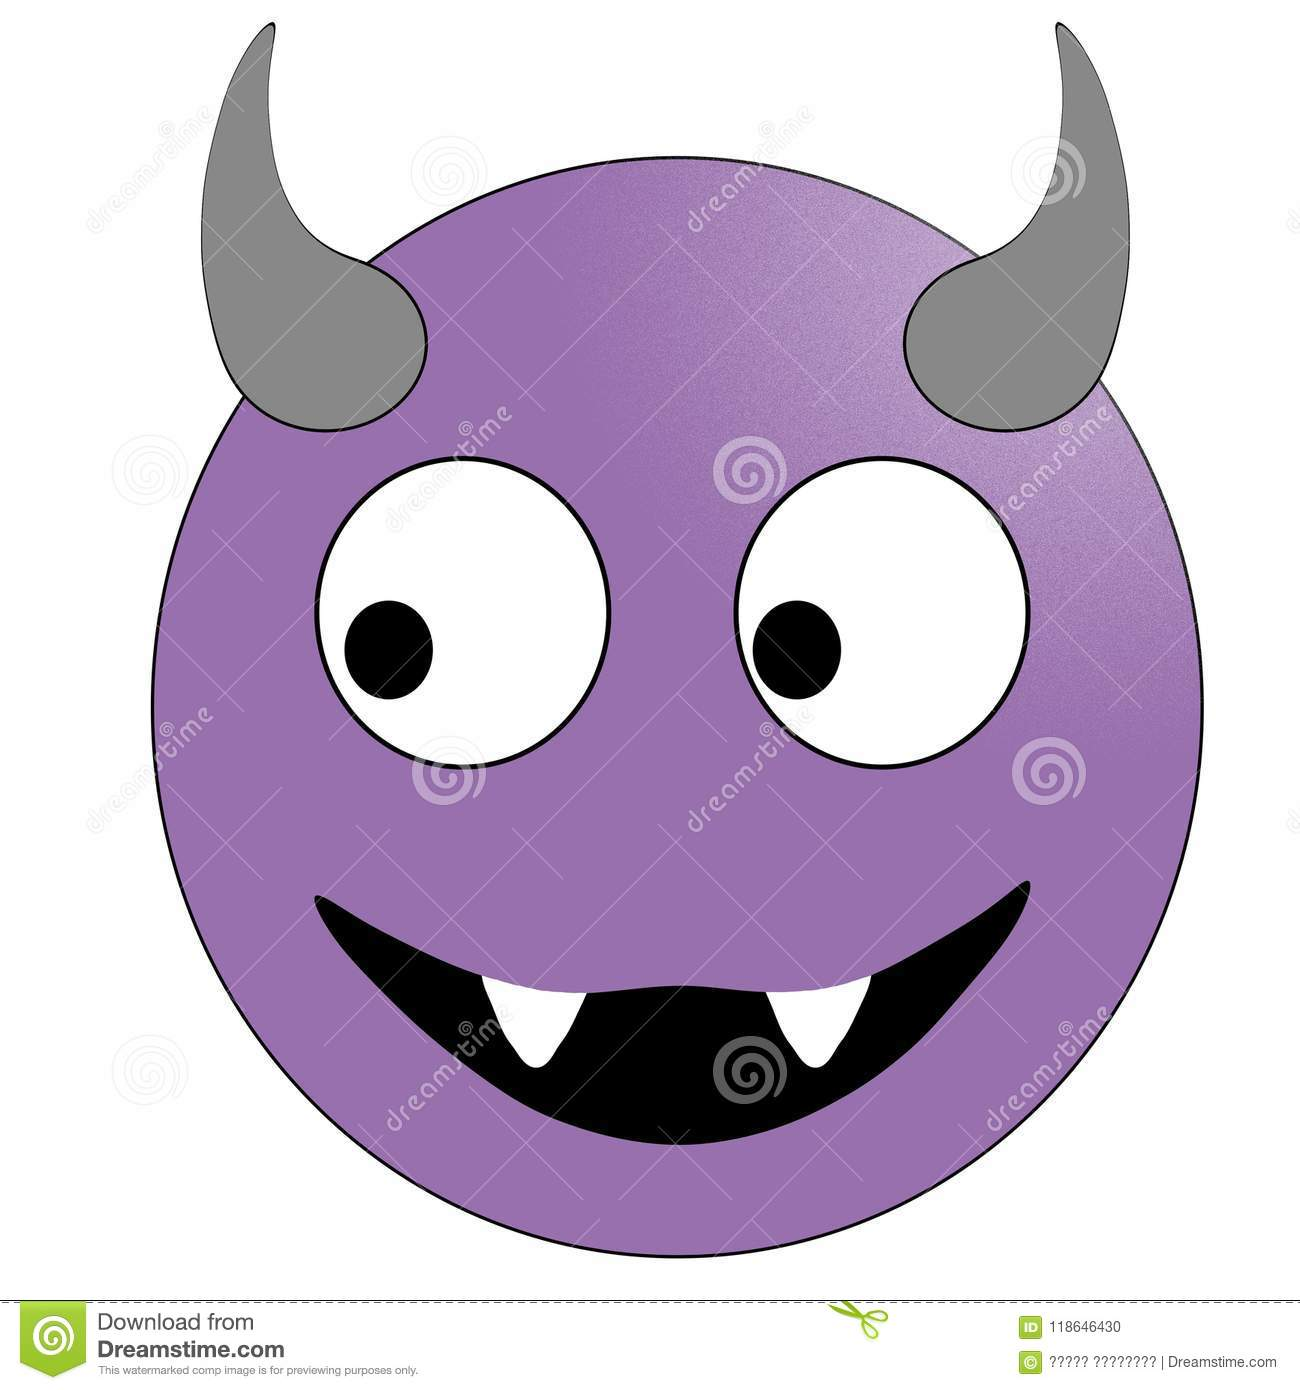 Smiling Face With Horns Purple Devil Emoticon Stock Illustration Illustration Of Facial Angry 118646430